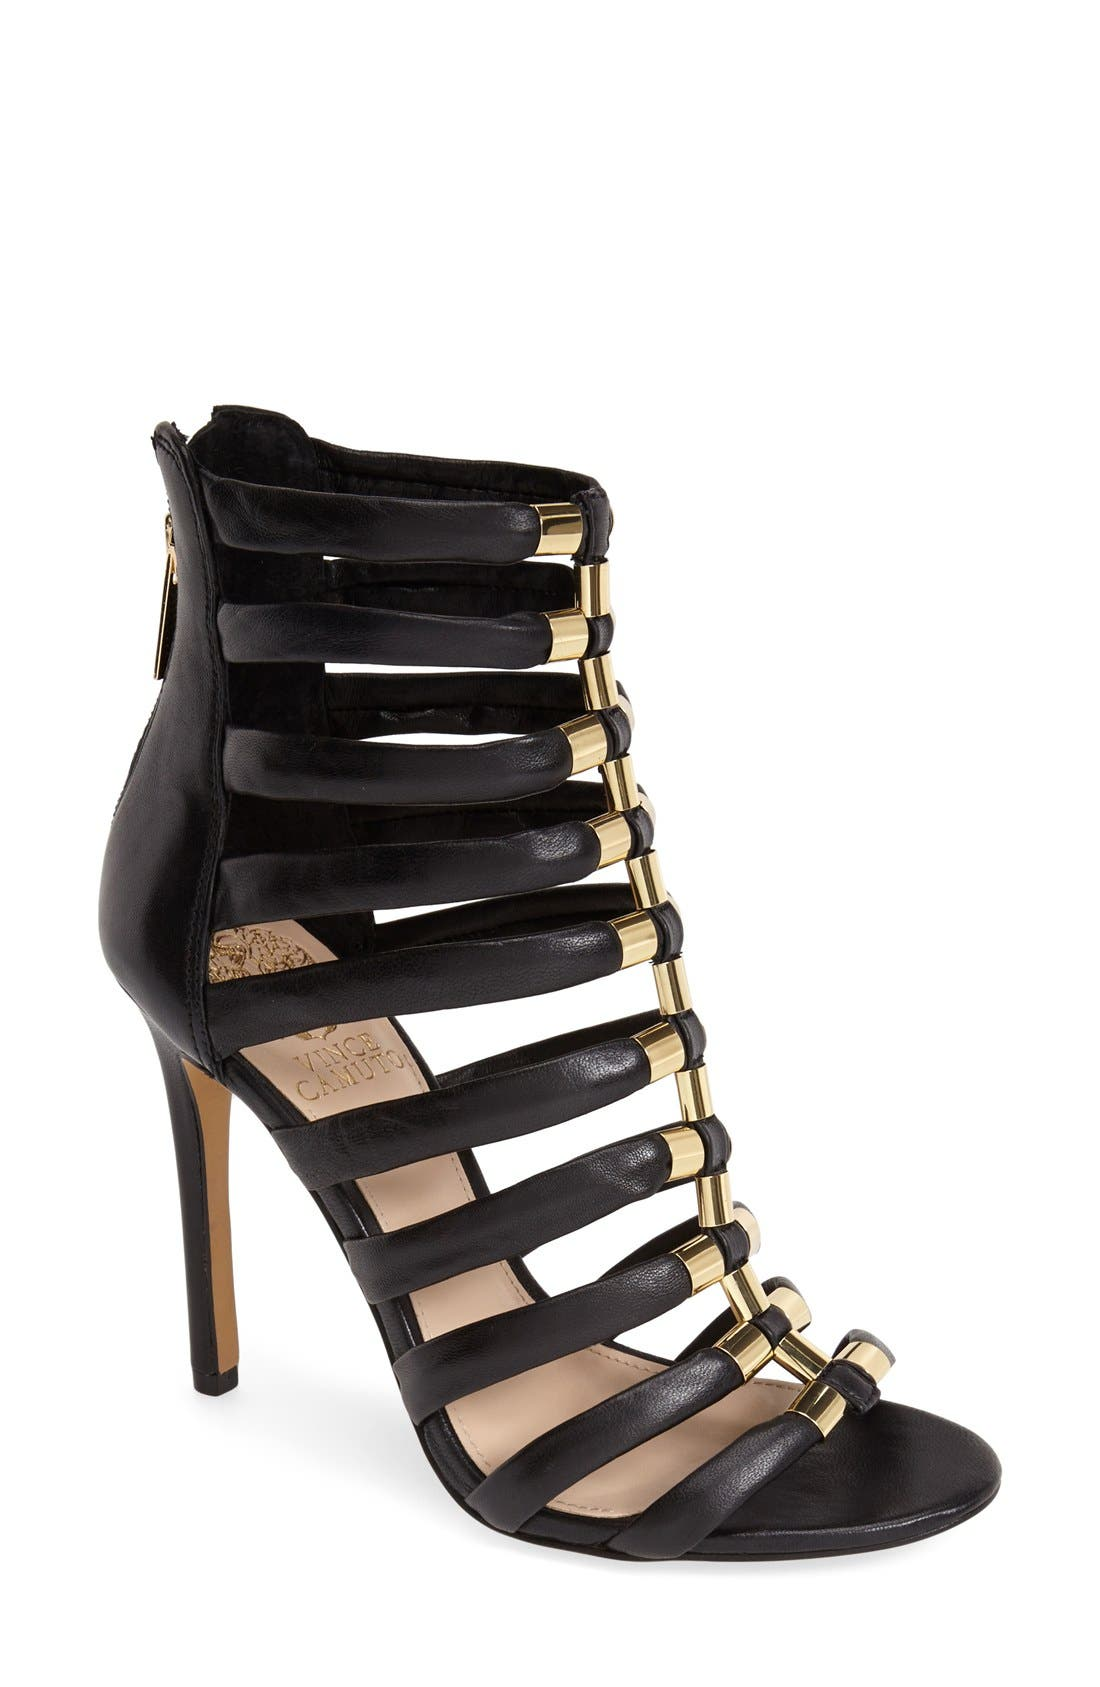 Main Image - Vince Camuto 'Troy' Gladiator Sandal (Women)